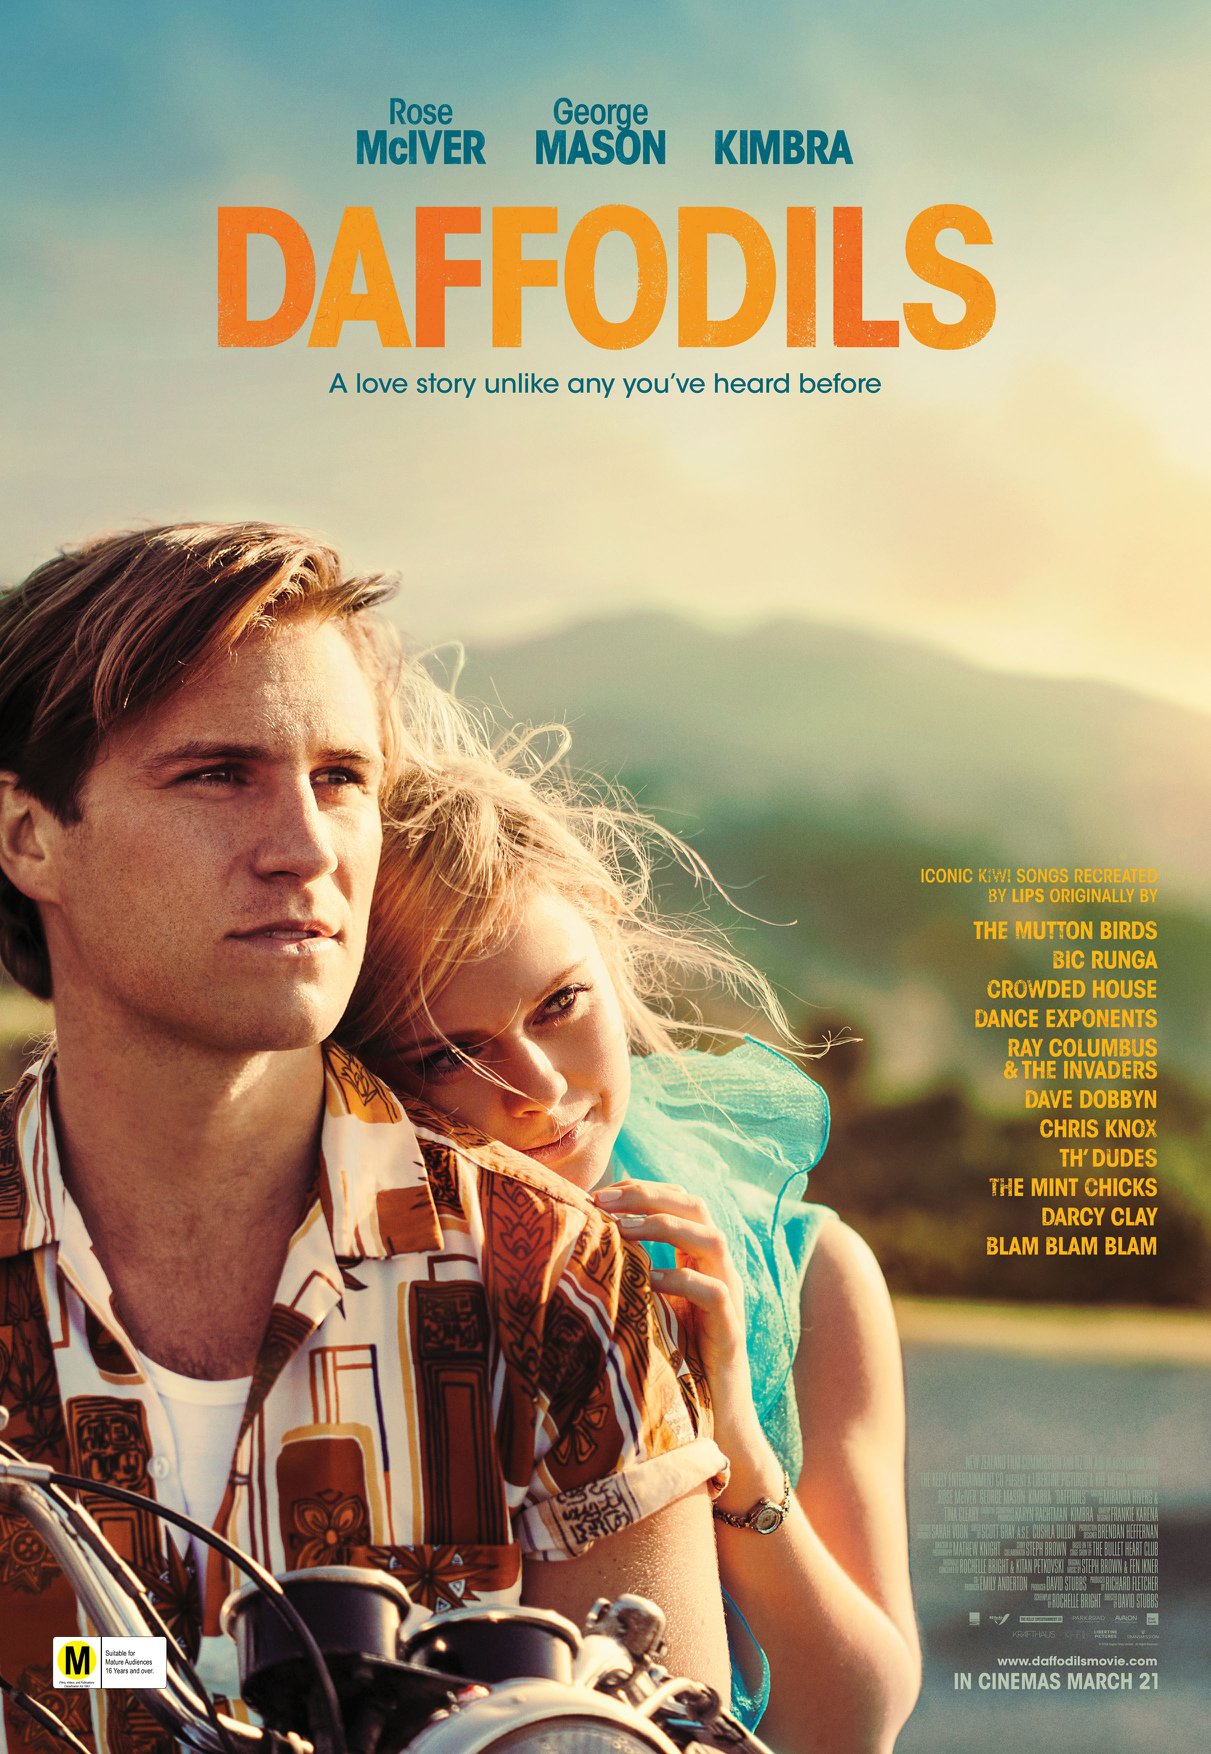 Libertine Pictures - Daffodils - poster.jpg